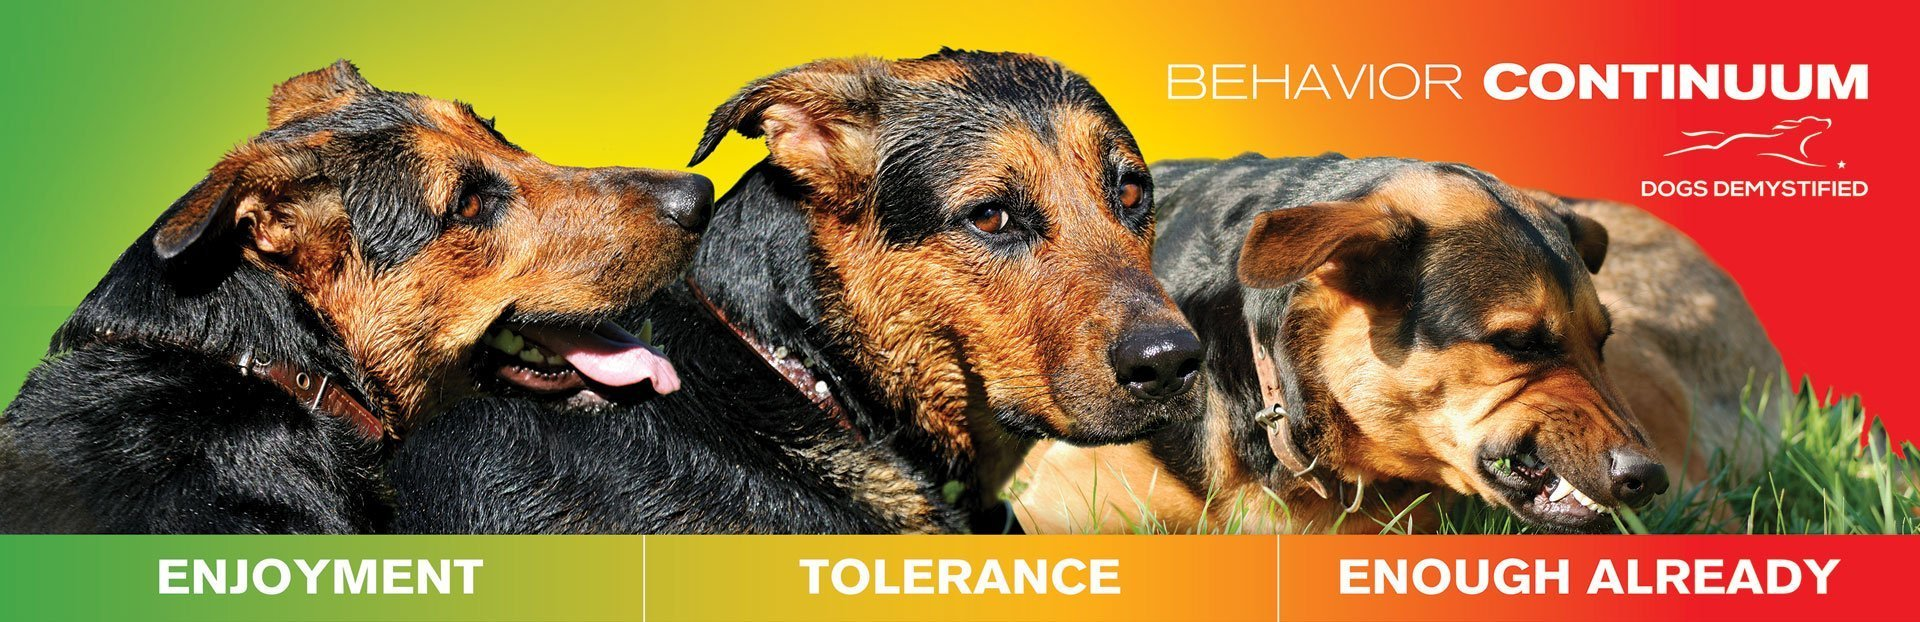 dog behavior